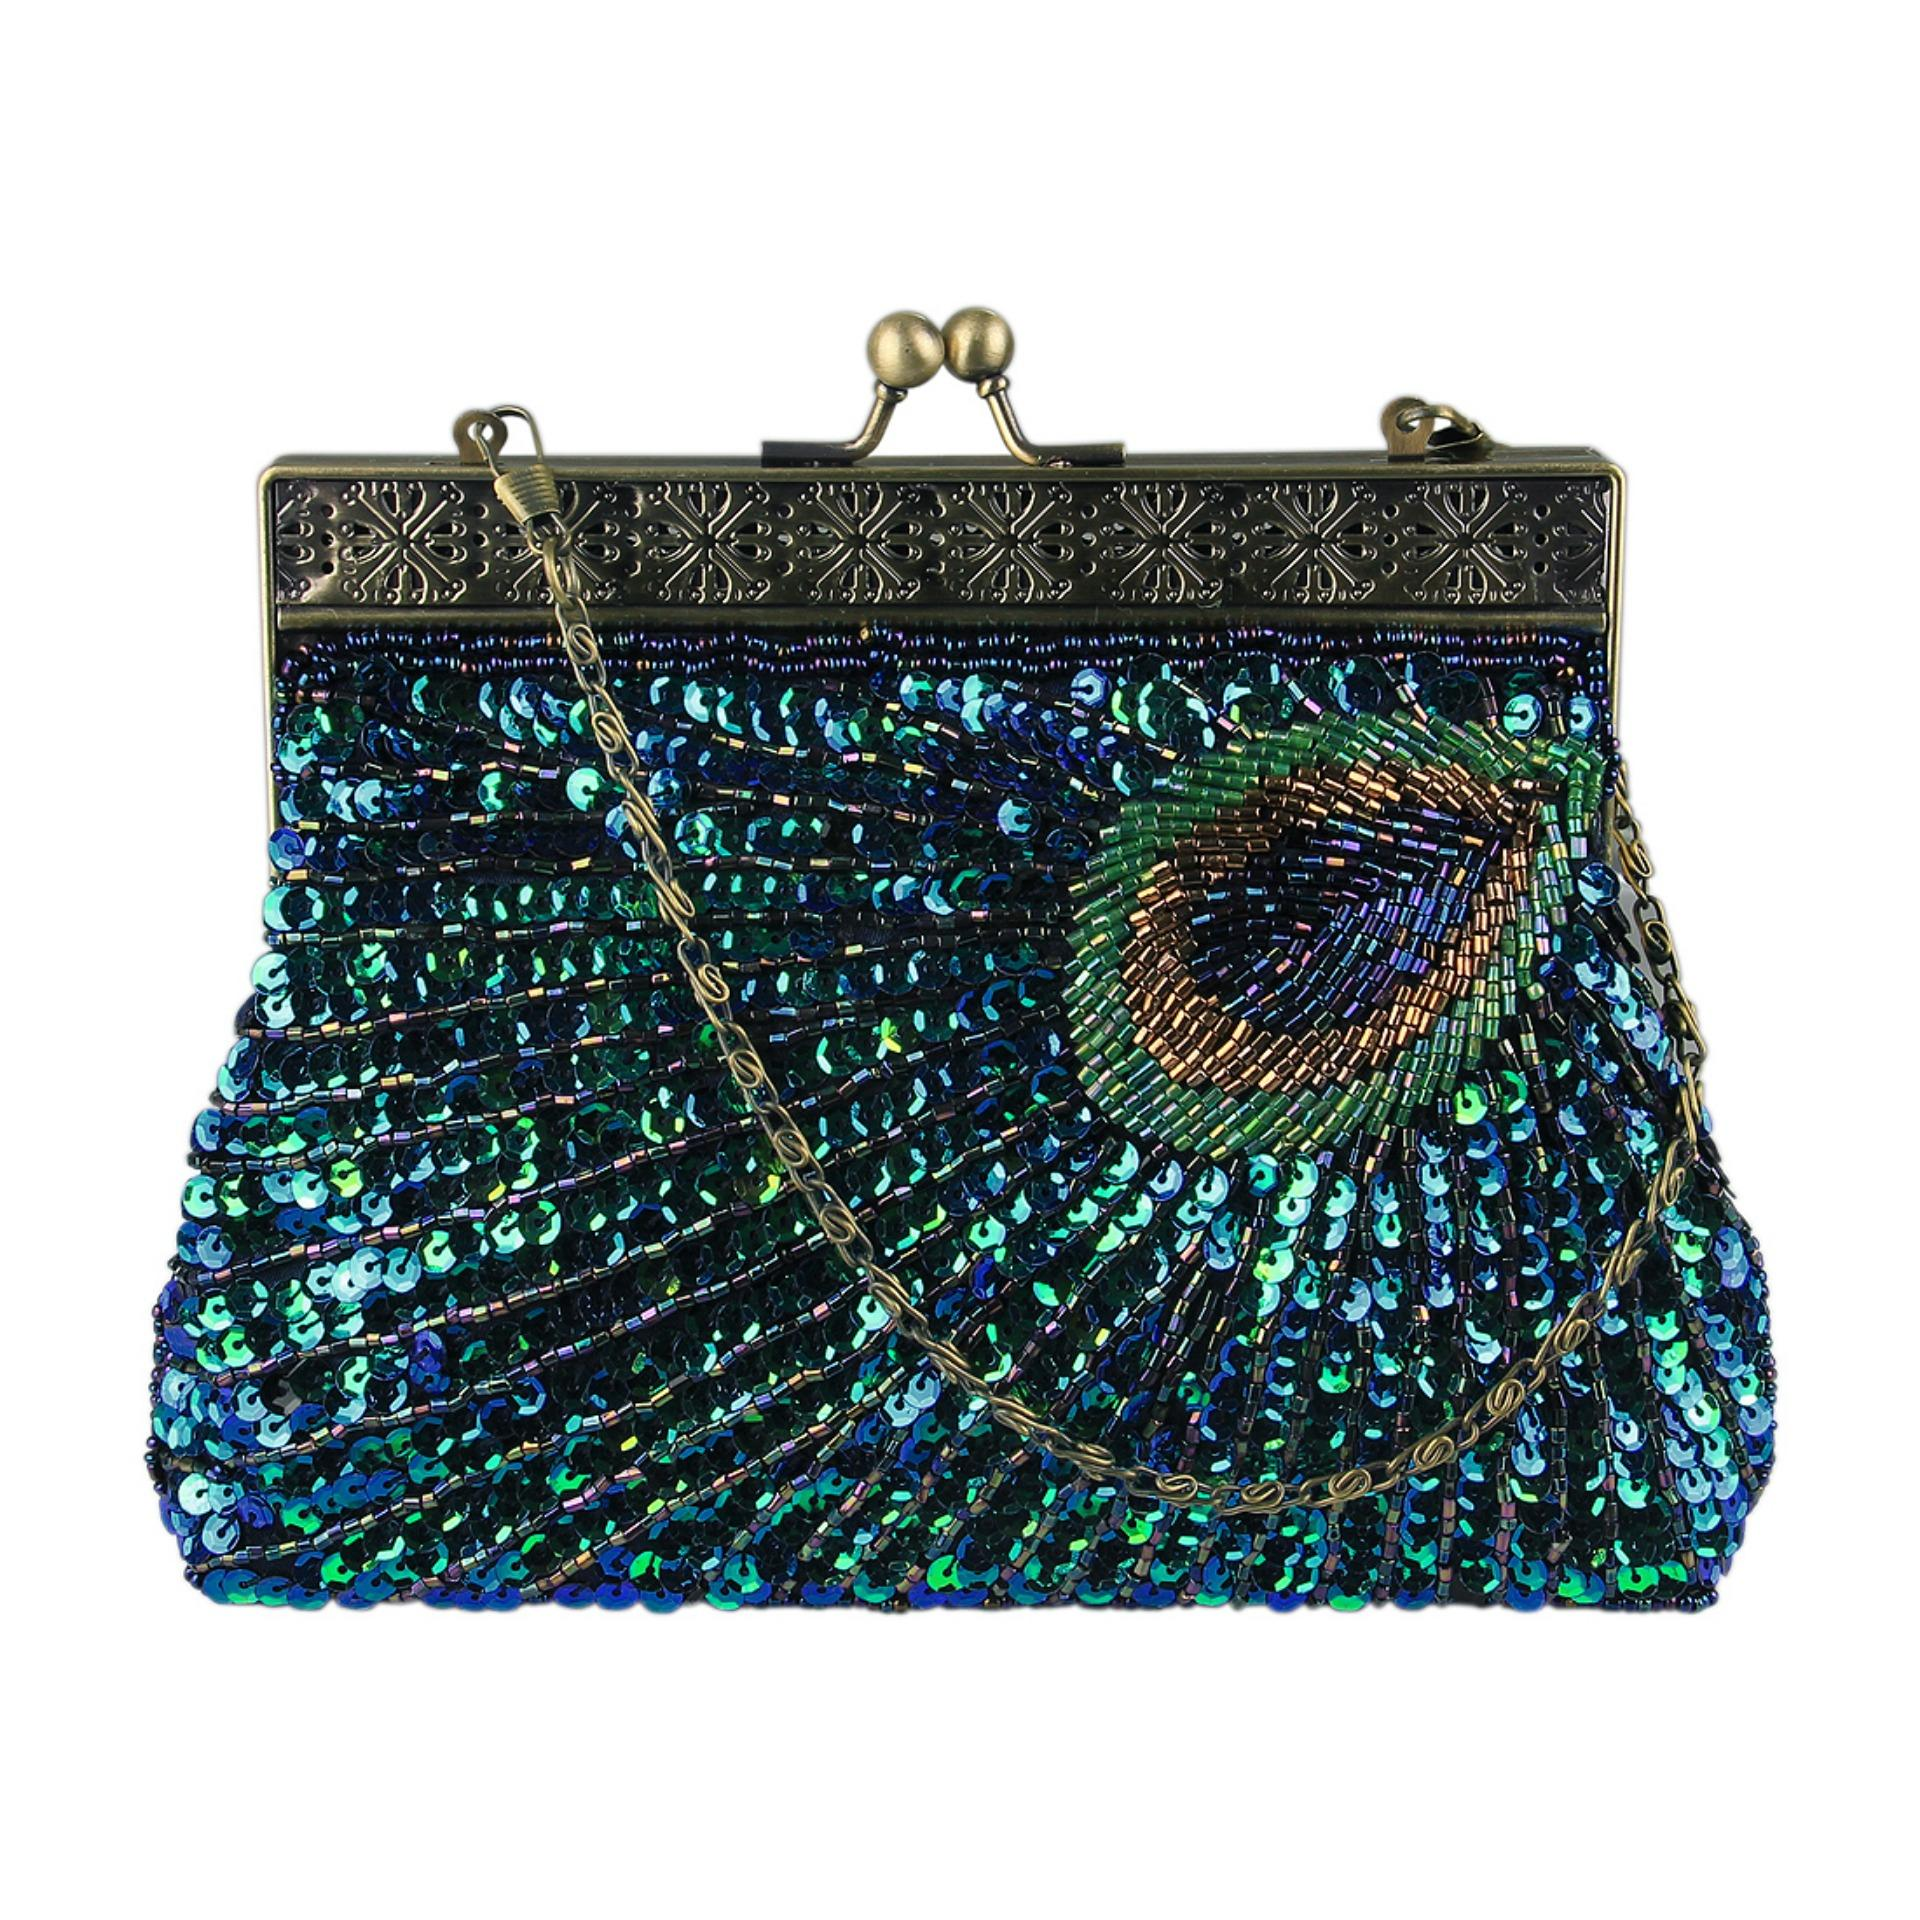 75e85e1c5f ECOSUSI Vintage Clutch Teal Peacock Antique Beaded Sequin Evening Handbag  Sunburst Navy and Turquoise Purse